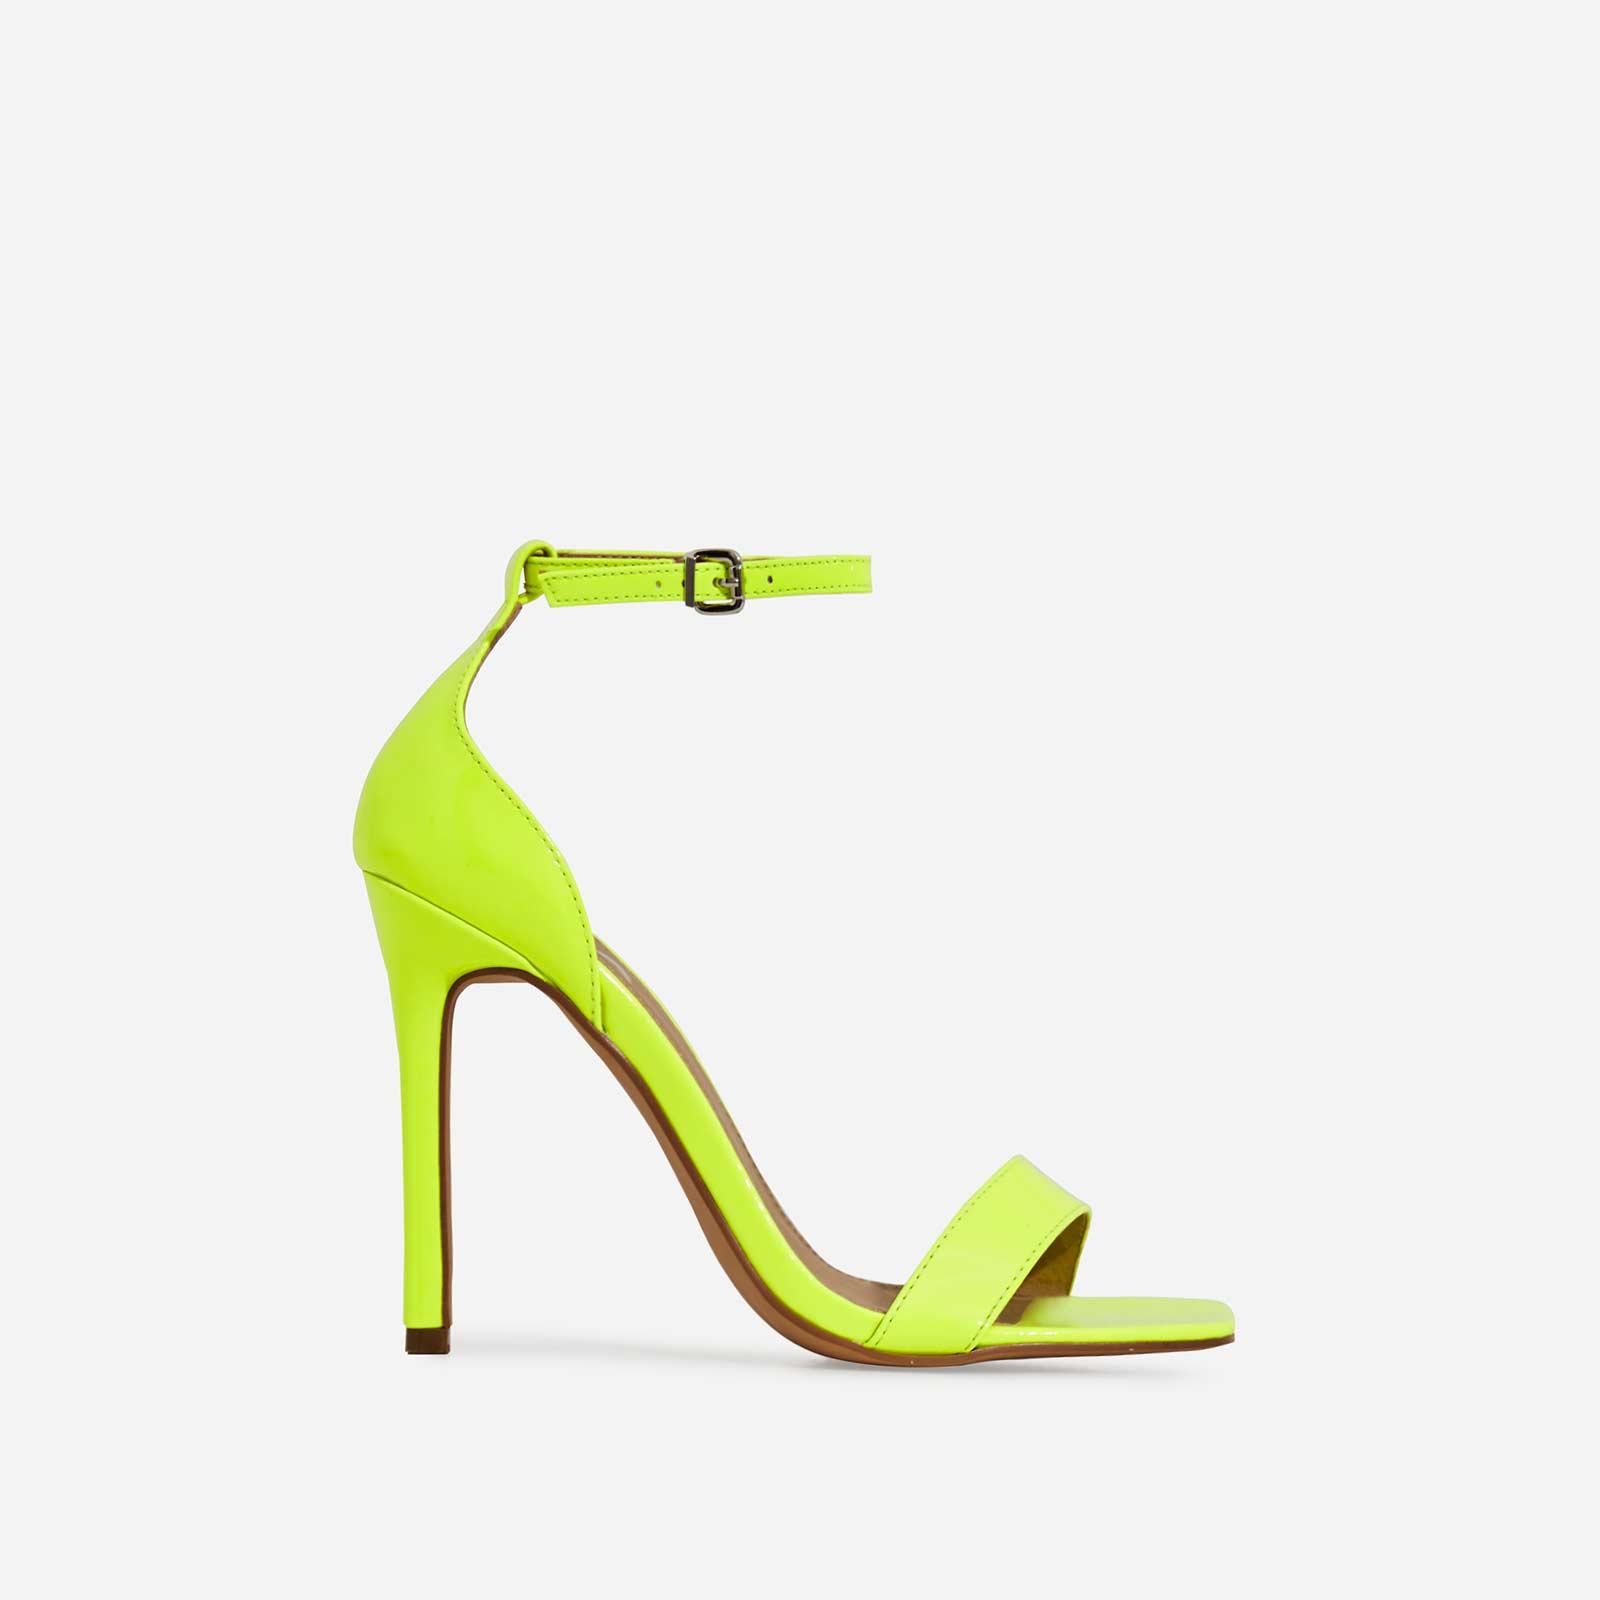 Court Barely There Square Toe Heel In Neon Lime Green Patent